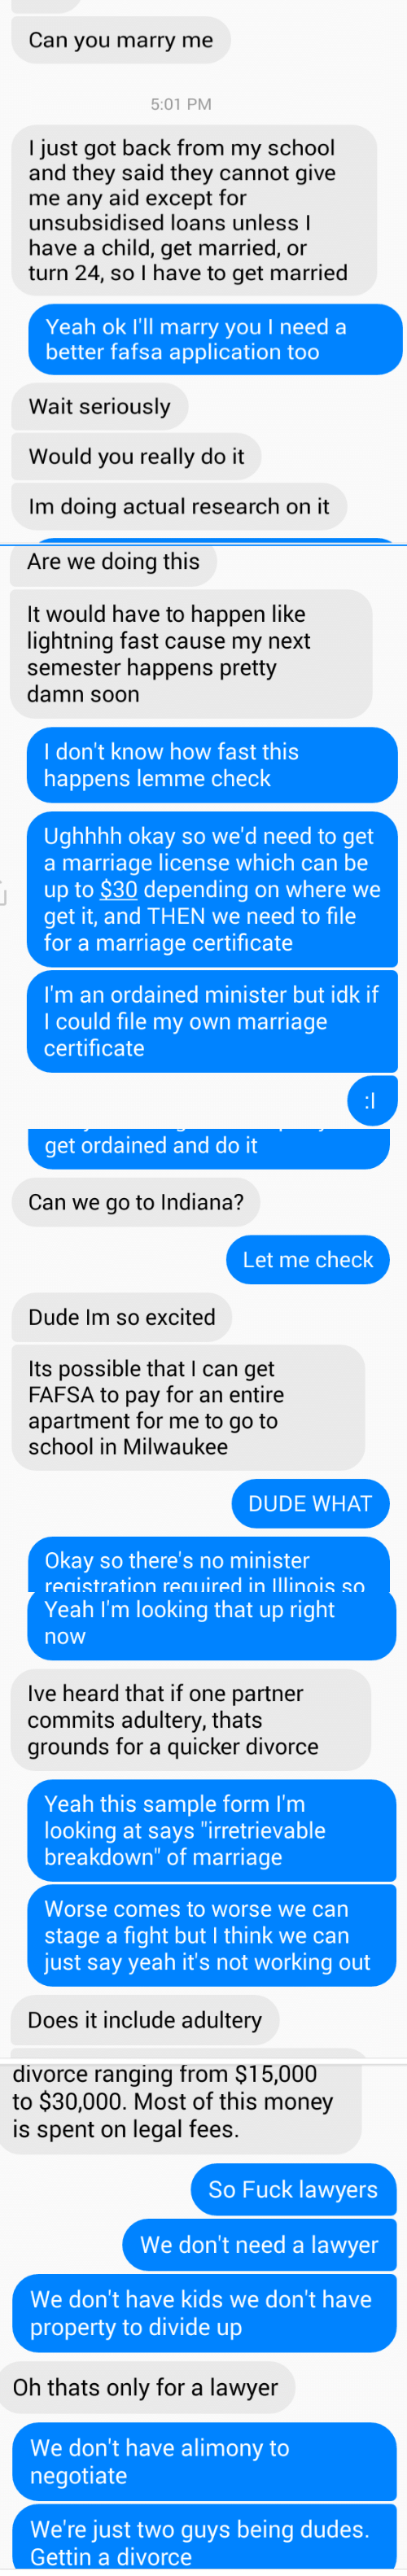 "Dude, Fafsa, and Lawyer: Can you marry me  5:01 PM  I just got back from my school  and they said they cannot give  me any aid except for  unsubsidised loans unless l  have a child, get married, or  turn 24, so I have to get married  Yeah ok I'll marry you I need a  better fafsa application too  Wait seriously  Would you really do it  Im doing actual research on it   Are we doing this  It would have to happen like  lightning fast cause my next  semester happens pretty  damn soon  I don't know how fast this  happens lemme check  Ughhhh okay so we'd need to get  a marriage license which can be  up to $30 depending on where we  get it, and THEN we need to file  for a marriage certificate  I'm an ordained minister but idk if  I could file my own marriage  certificate   get ordained and do it  Can we go to Indiana?  Let me check  Dude Im so excited  Its possible that I can get  FAFSA to pay for an entire  apartment for me to go to  school in Milwaukee  DUDE WHAT  Okay so there's no minister  registration required in lllinois so   Yeah I'm looking that up right  now  Ive heard that if one partner  commits adultery, thats  grounds for a quicker divorce  Yeah this sample form I'm  looking at says ""irretrievable  breakdown"" of marriage  Worse comes to worse we can  stage a fight but I think we can  just say yeah it's not working out  Does it include adultery   divorce ranging from $15,000  to $30,000. Most of this money  is spent on legal fees.  So Fuck lawyers  We don't need a lawyer  We don't have kids we don't have  property to divide up  Oh thats only for a lawyer  We don't have alimony to  negotiate  We're just two guys being dudes.  Gettin a divorce"